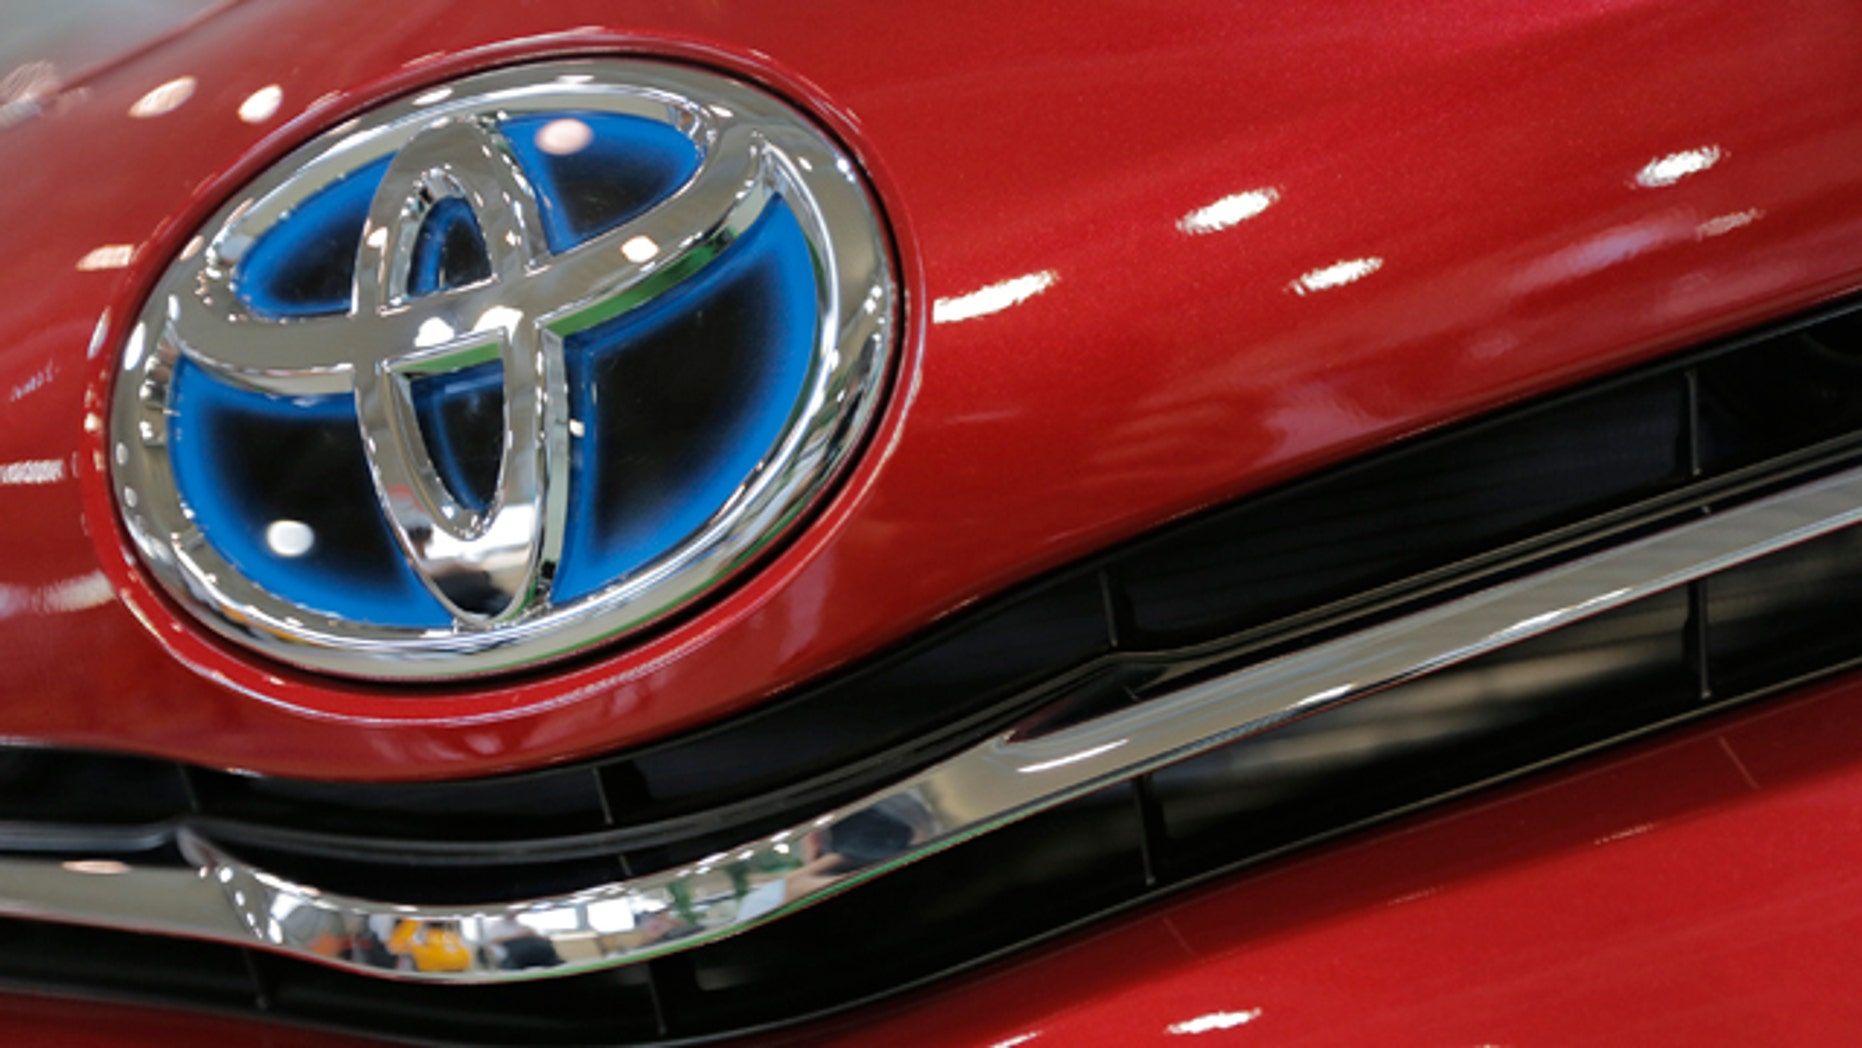 August 2, 2013: The emblem of a Toyota car shines at Toyota Motor Corp.'s showroom Toyota Mega Web in Tokyo. (AP Photo/Itsuo Inouye, File)